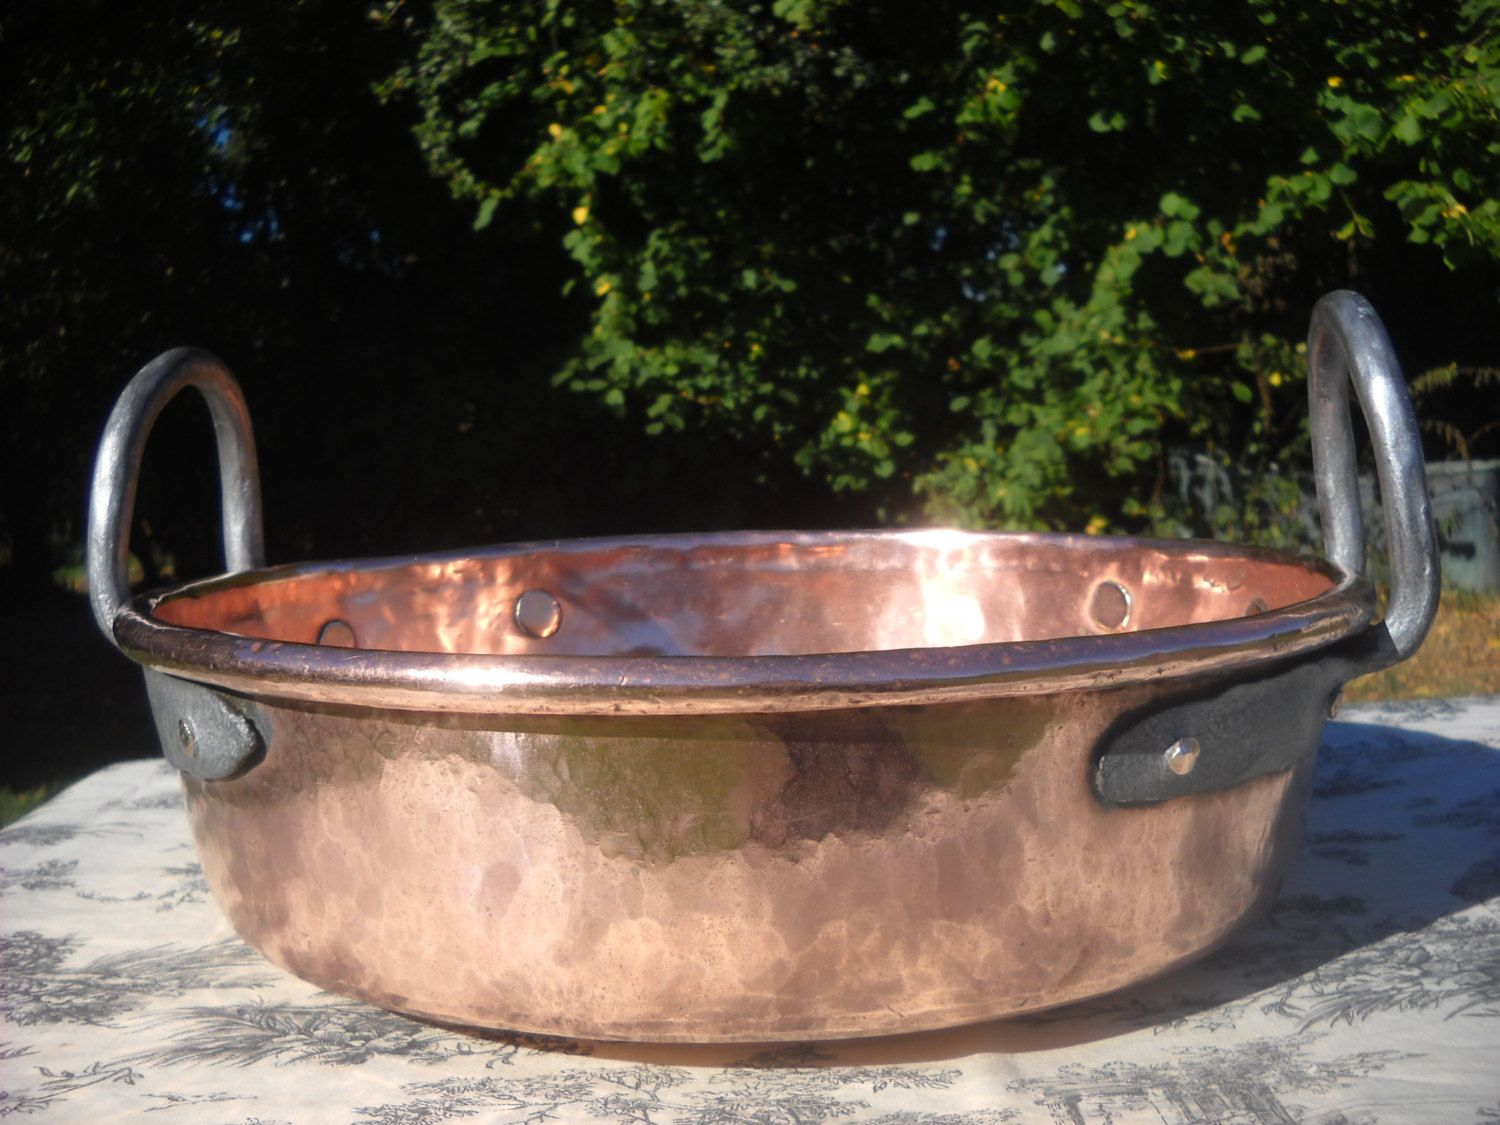 French Antique Copper Jam Jelly Preserves Pan 3.7 kilos About 8lbs ...